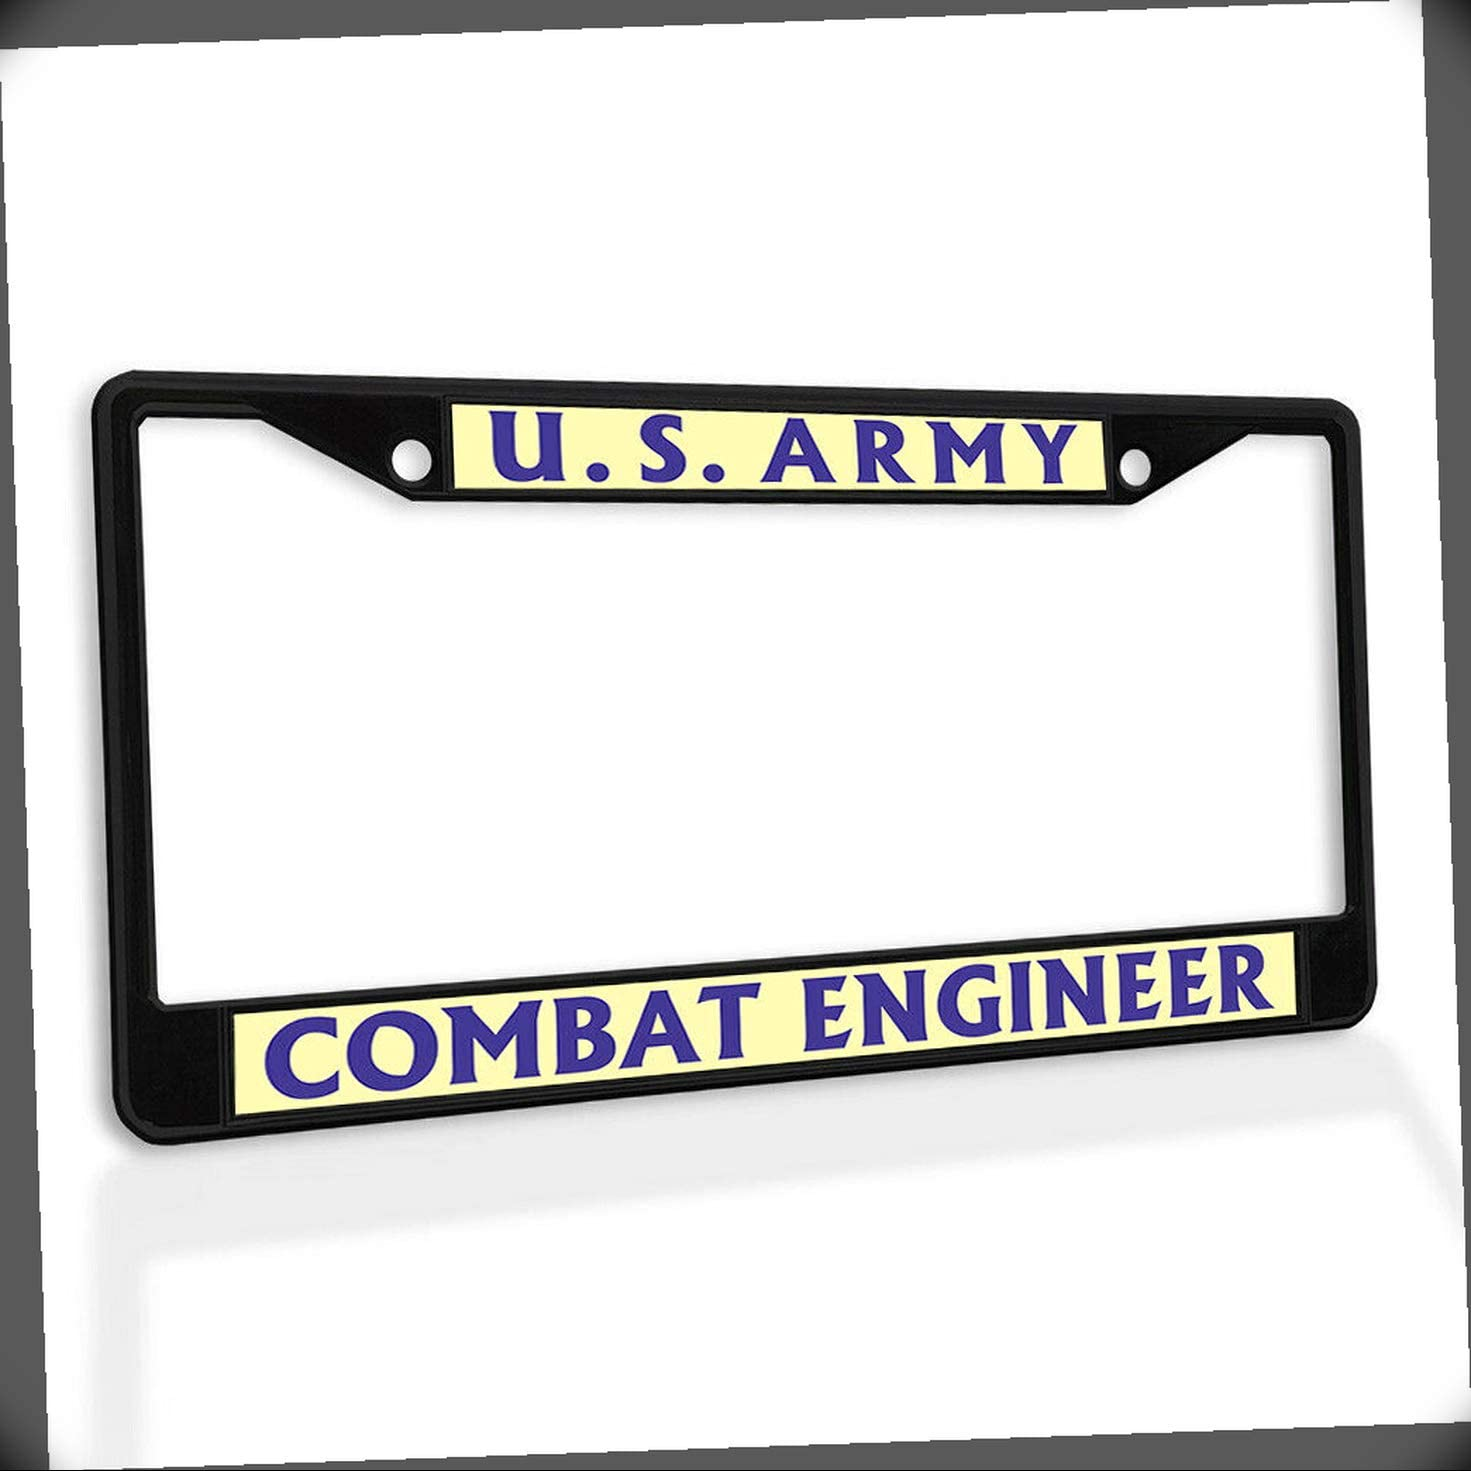 New License Plate Frame U.S. Army Car Metal Engineer Free 100% quality warranty! Shipping Combat Inse